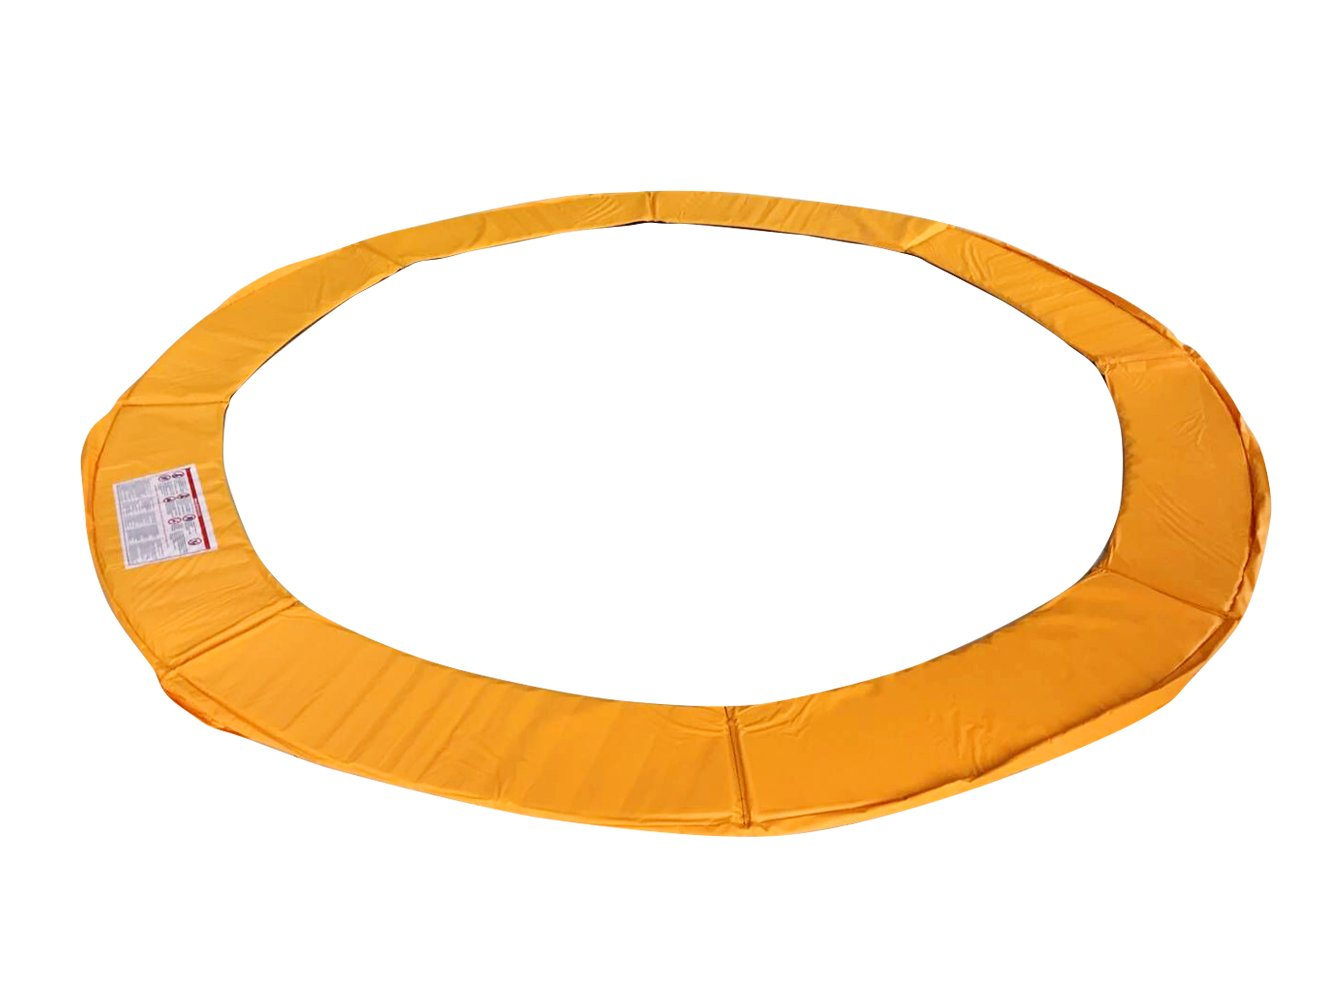 Exacme Trampoline Replacement Safety Pad Frame Spring Orange Color Round Cover 12-16 FT Pad (12ft) by Exacme (Image #1)